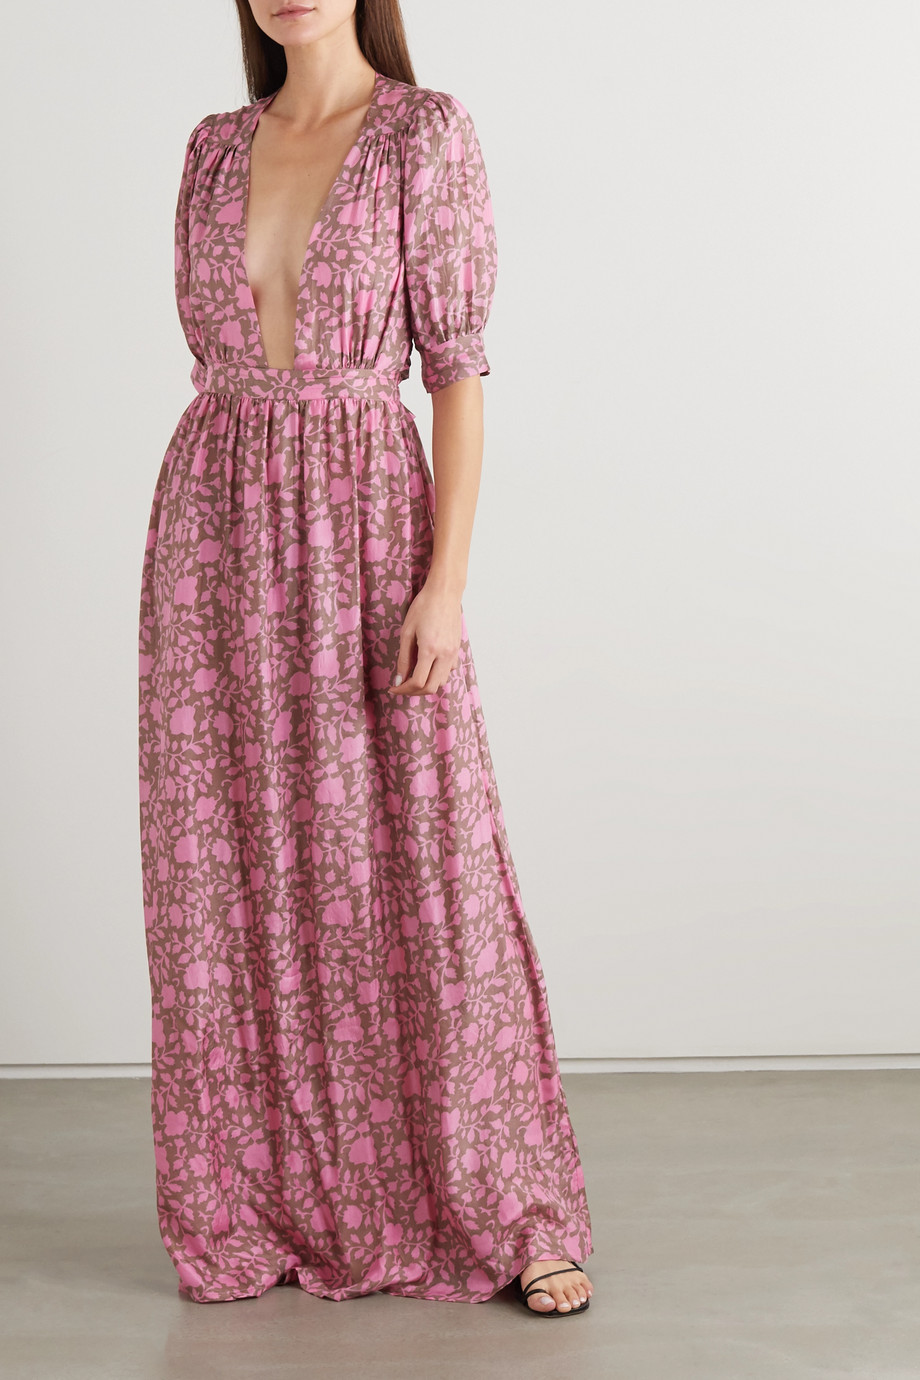 HANNAH ARTWEAR + NET SUSTAIN Surya open-back printed silk maxi dress